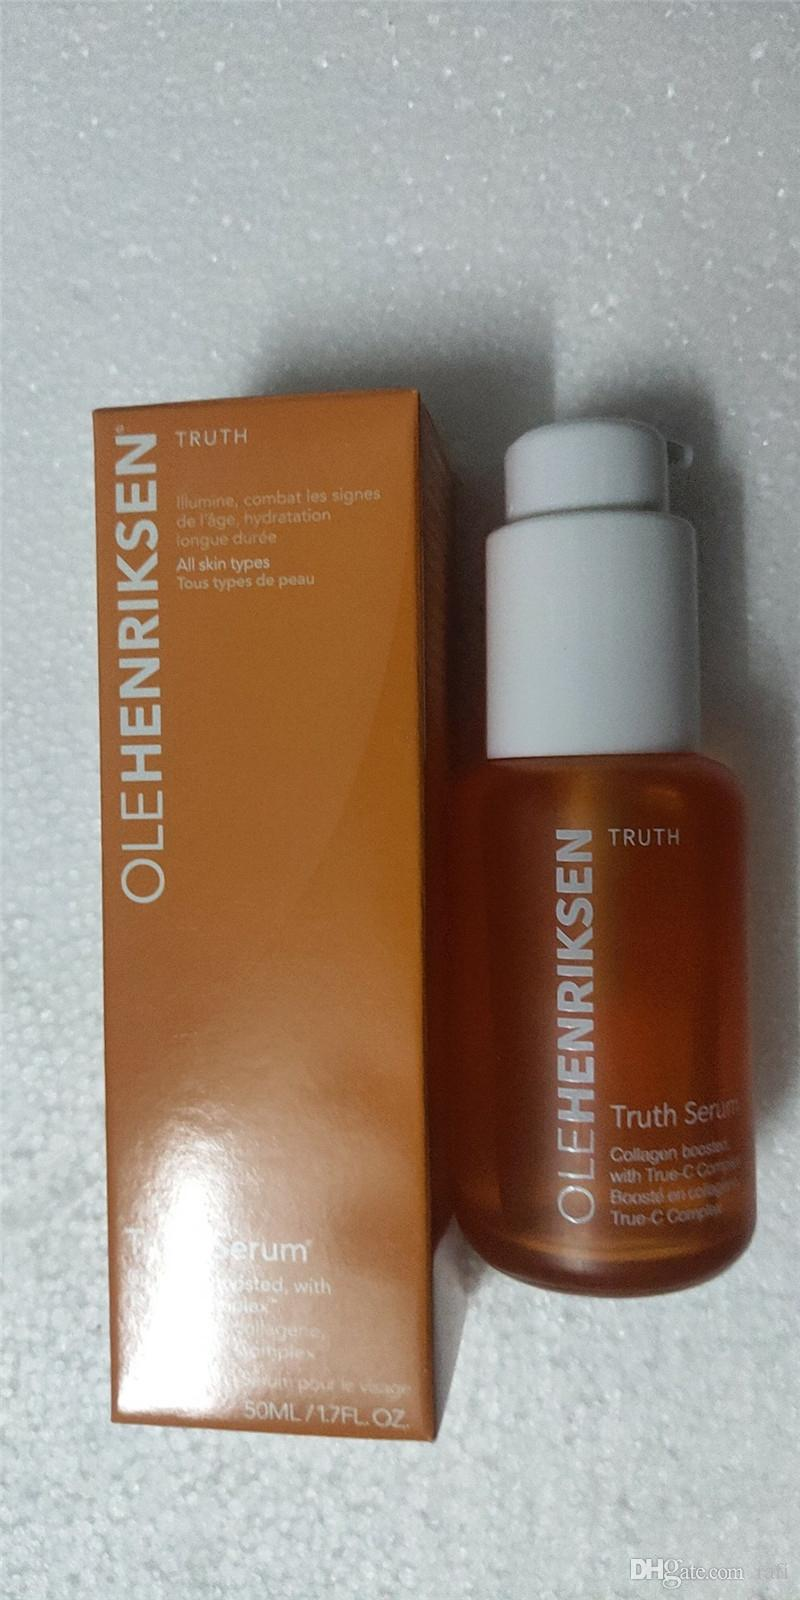 2019 new OLE Henriksen Truth Serum 50ml OLEHenriksen Facial Serum Collagen Serum High quality good item by dhl